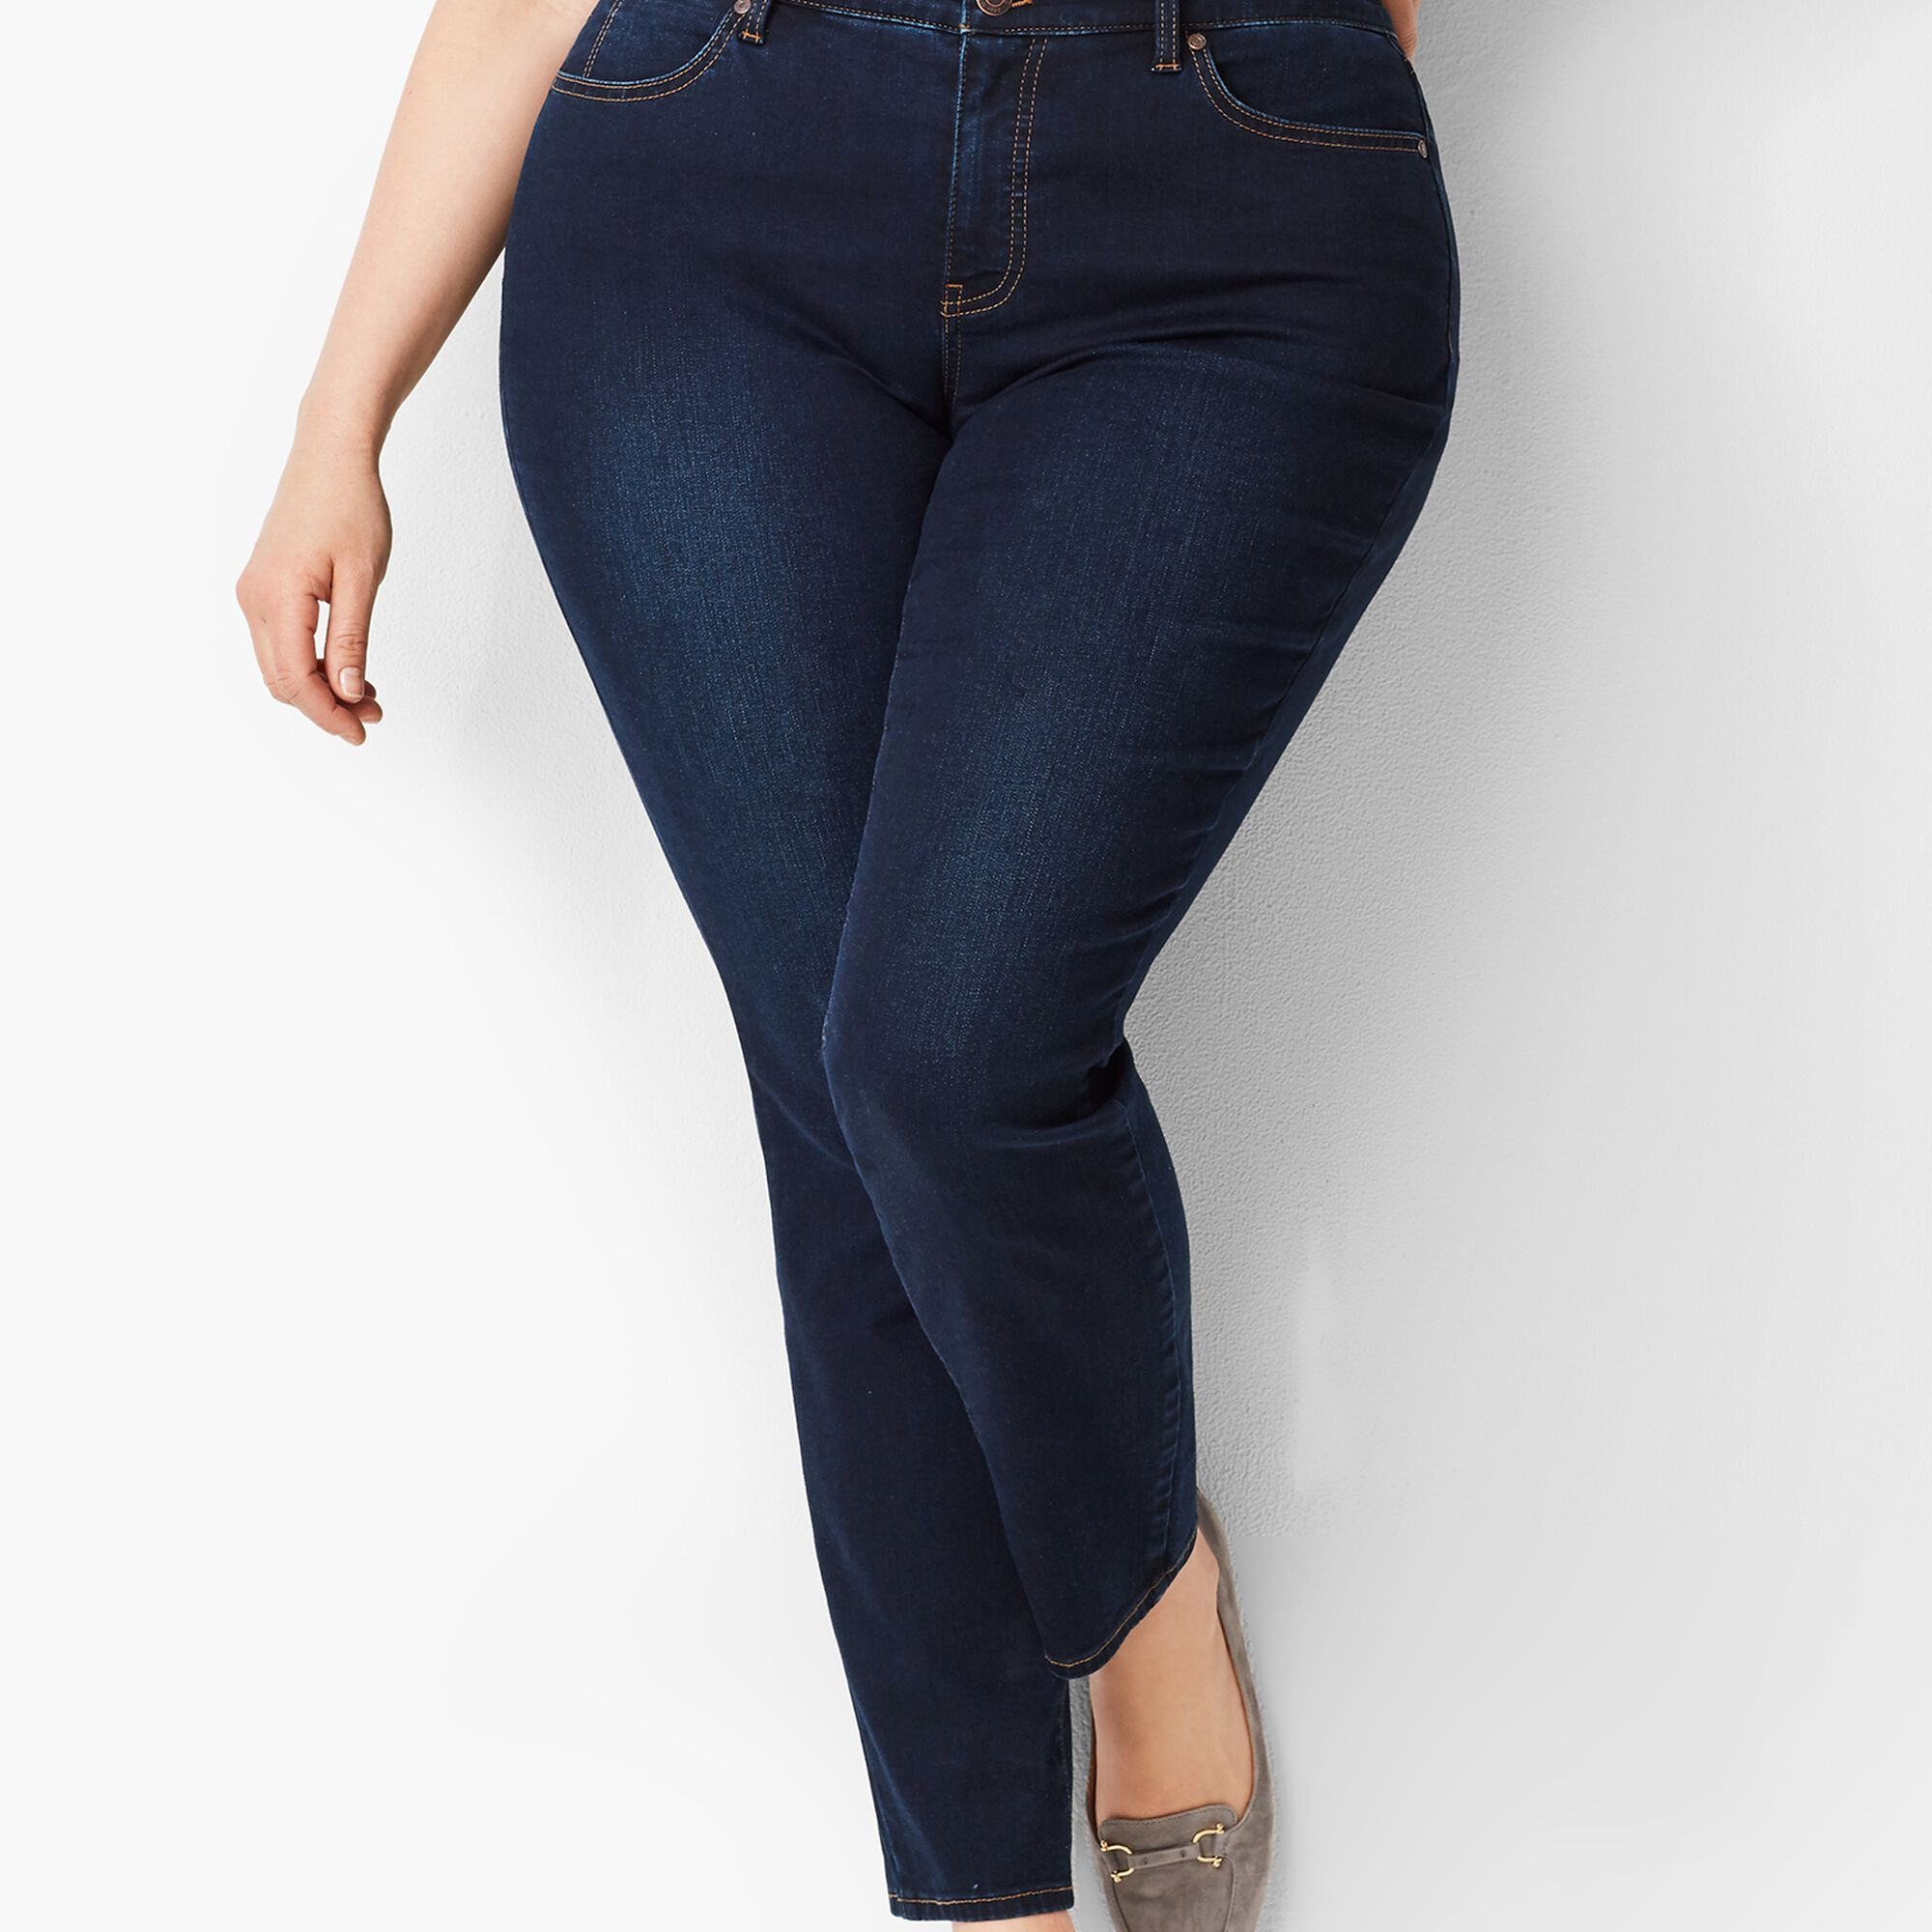 9fa848fbbb6 Plus Size Exclusive Slim Ankle Jeans - Curvy Fit Indy Wash Opens a New  Window.